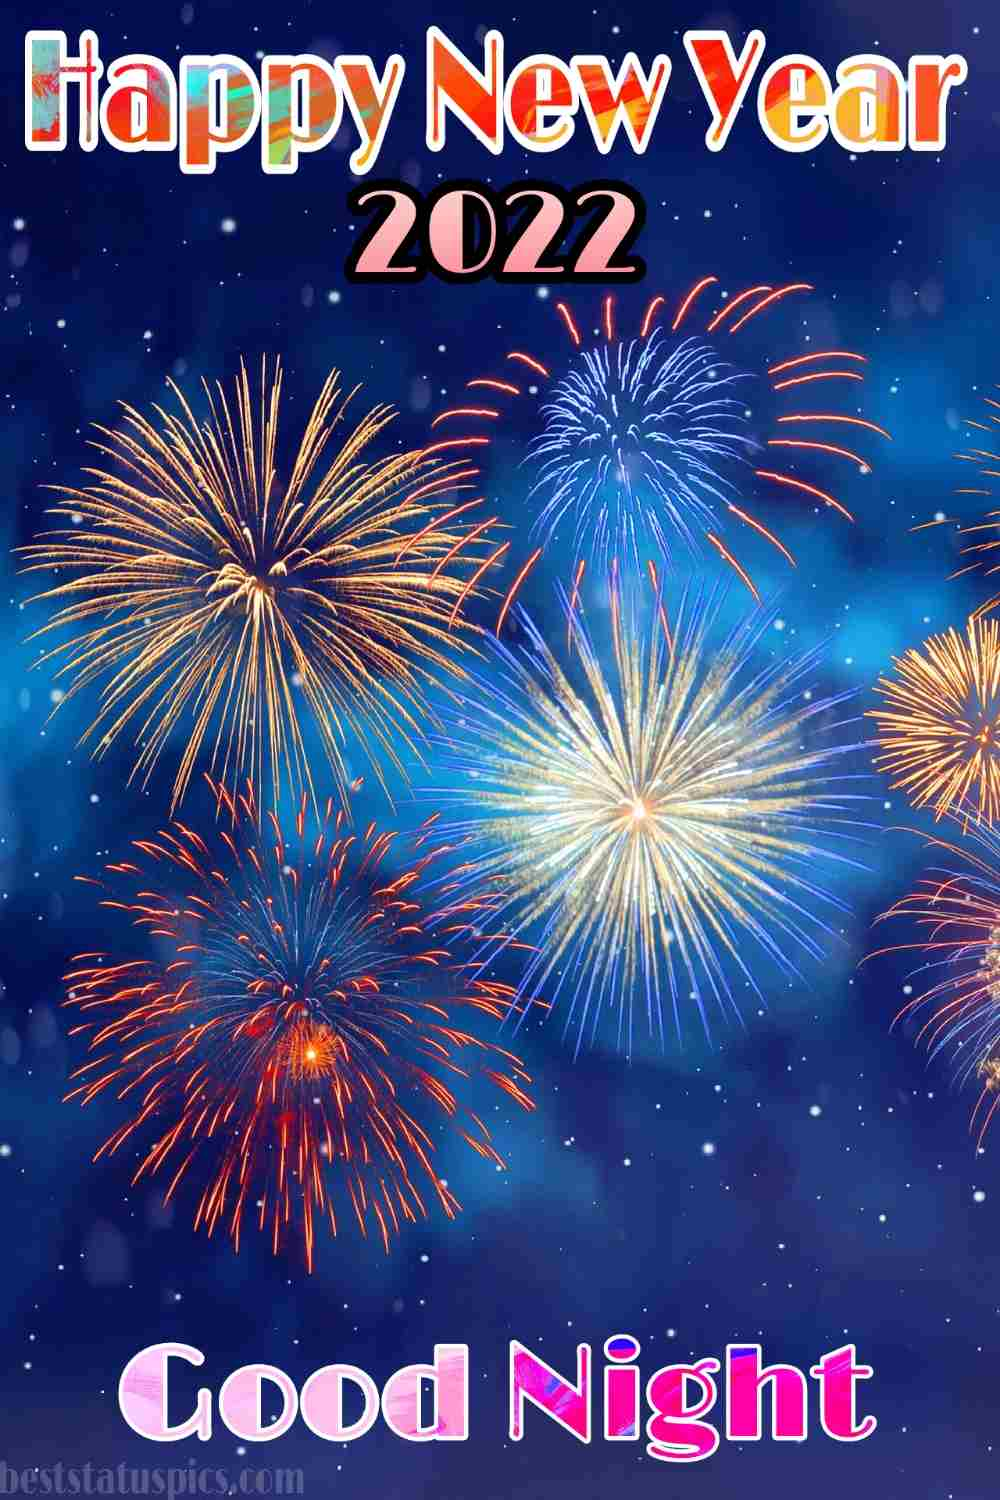 Good night Happy new year 2022 wishes images HD with fireworks for Instagram story